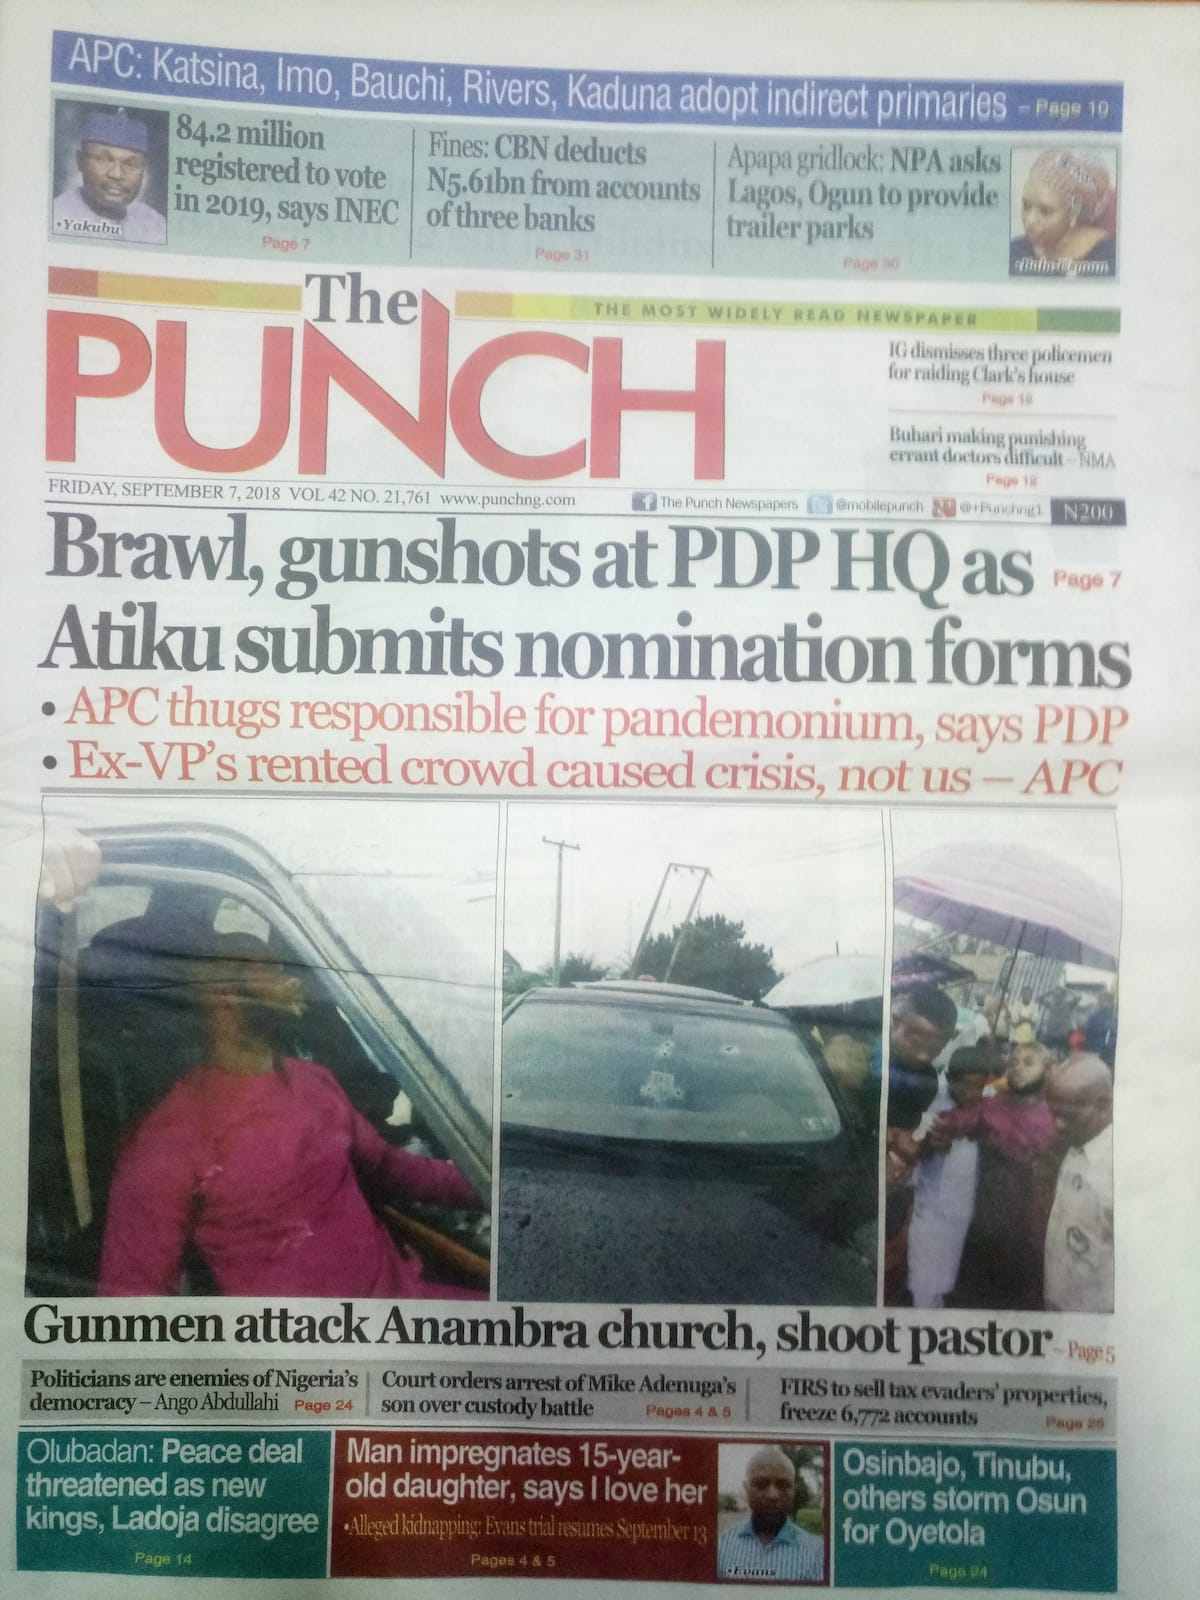 Newspaper review: Fight breaks out at PDP HQ as Atiku submits forms for 2019